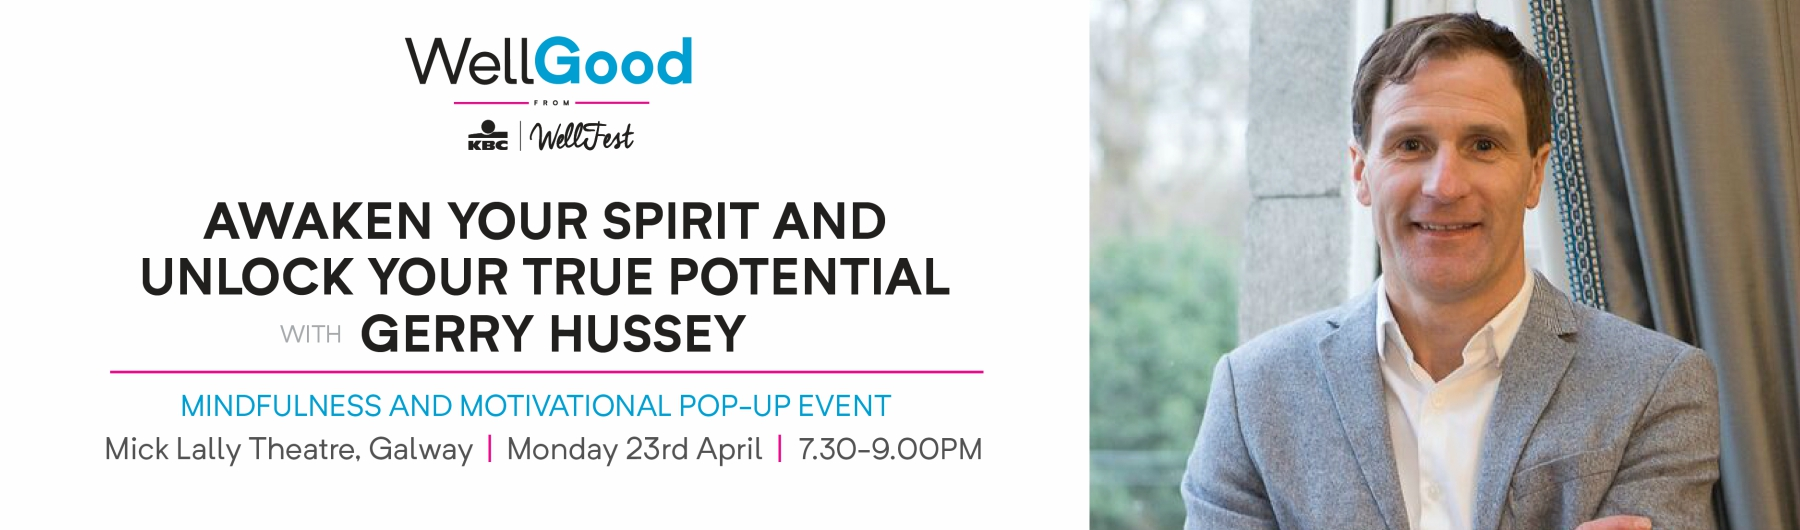 Awaken Your Spirit and Unlock Your Full Potential with Gerry Hussey